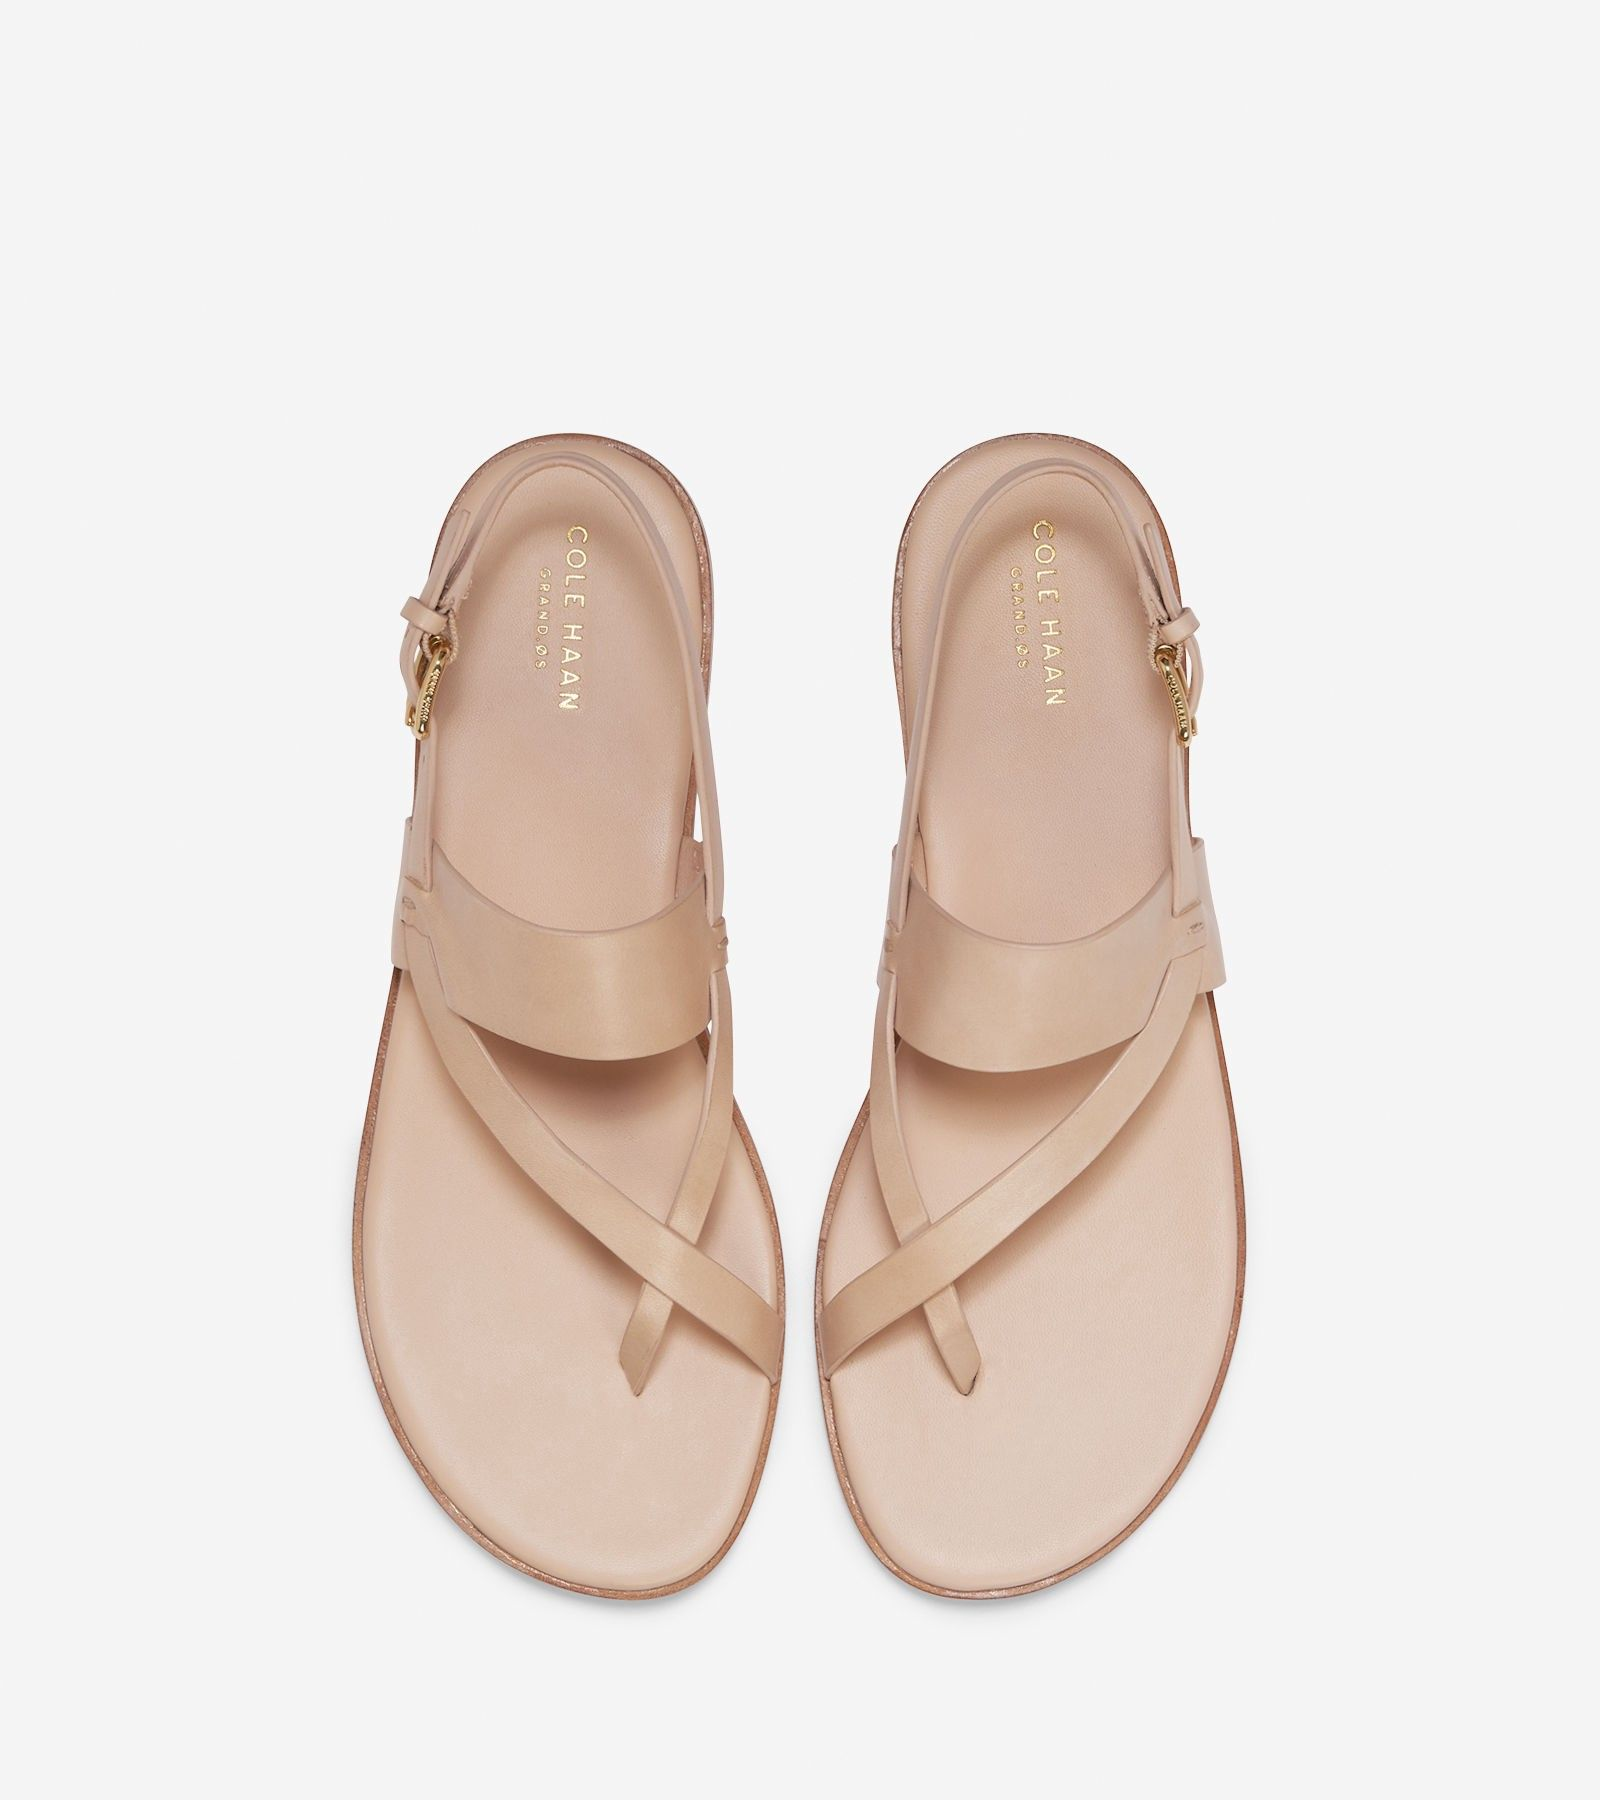 6ed7017d229b Cole Haan Anica Thong Sandal - Nude Leather 7.5